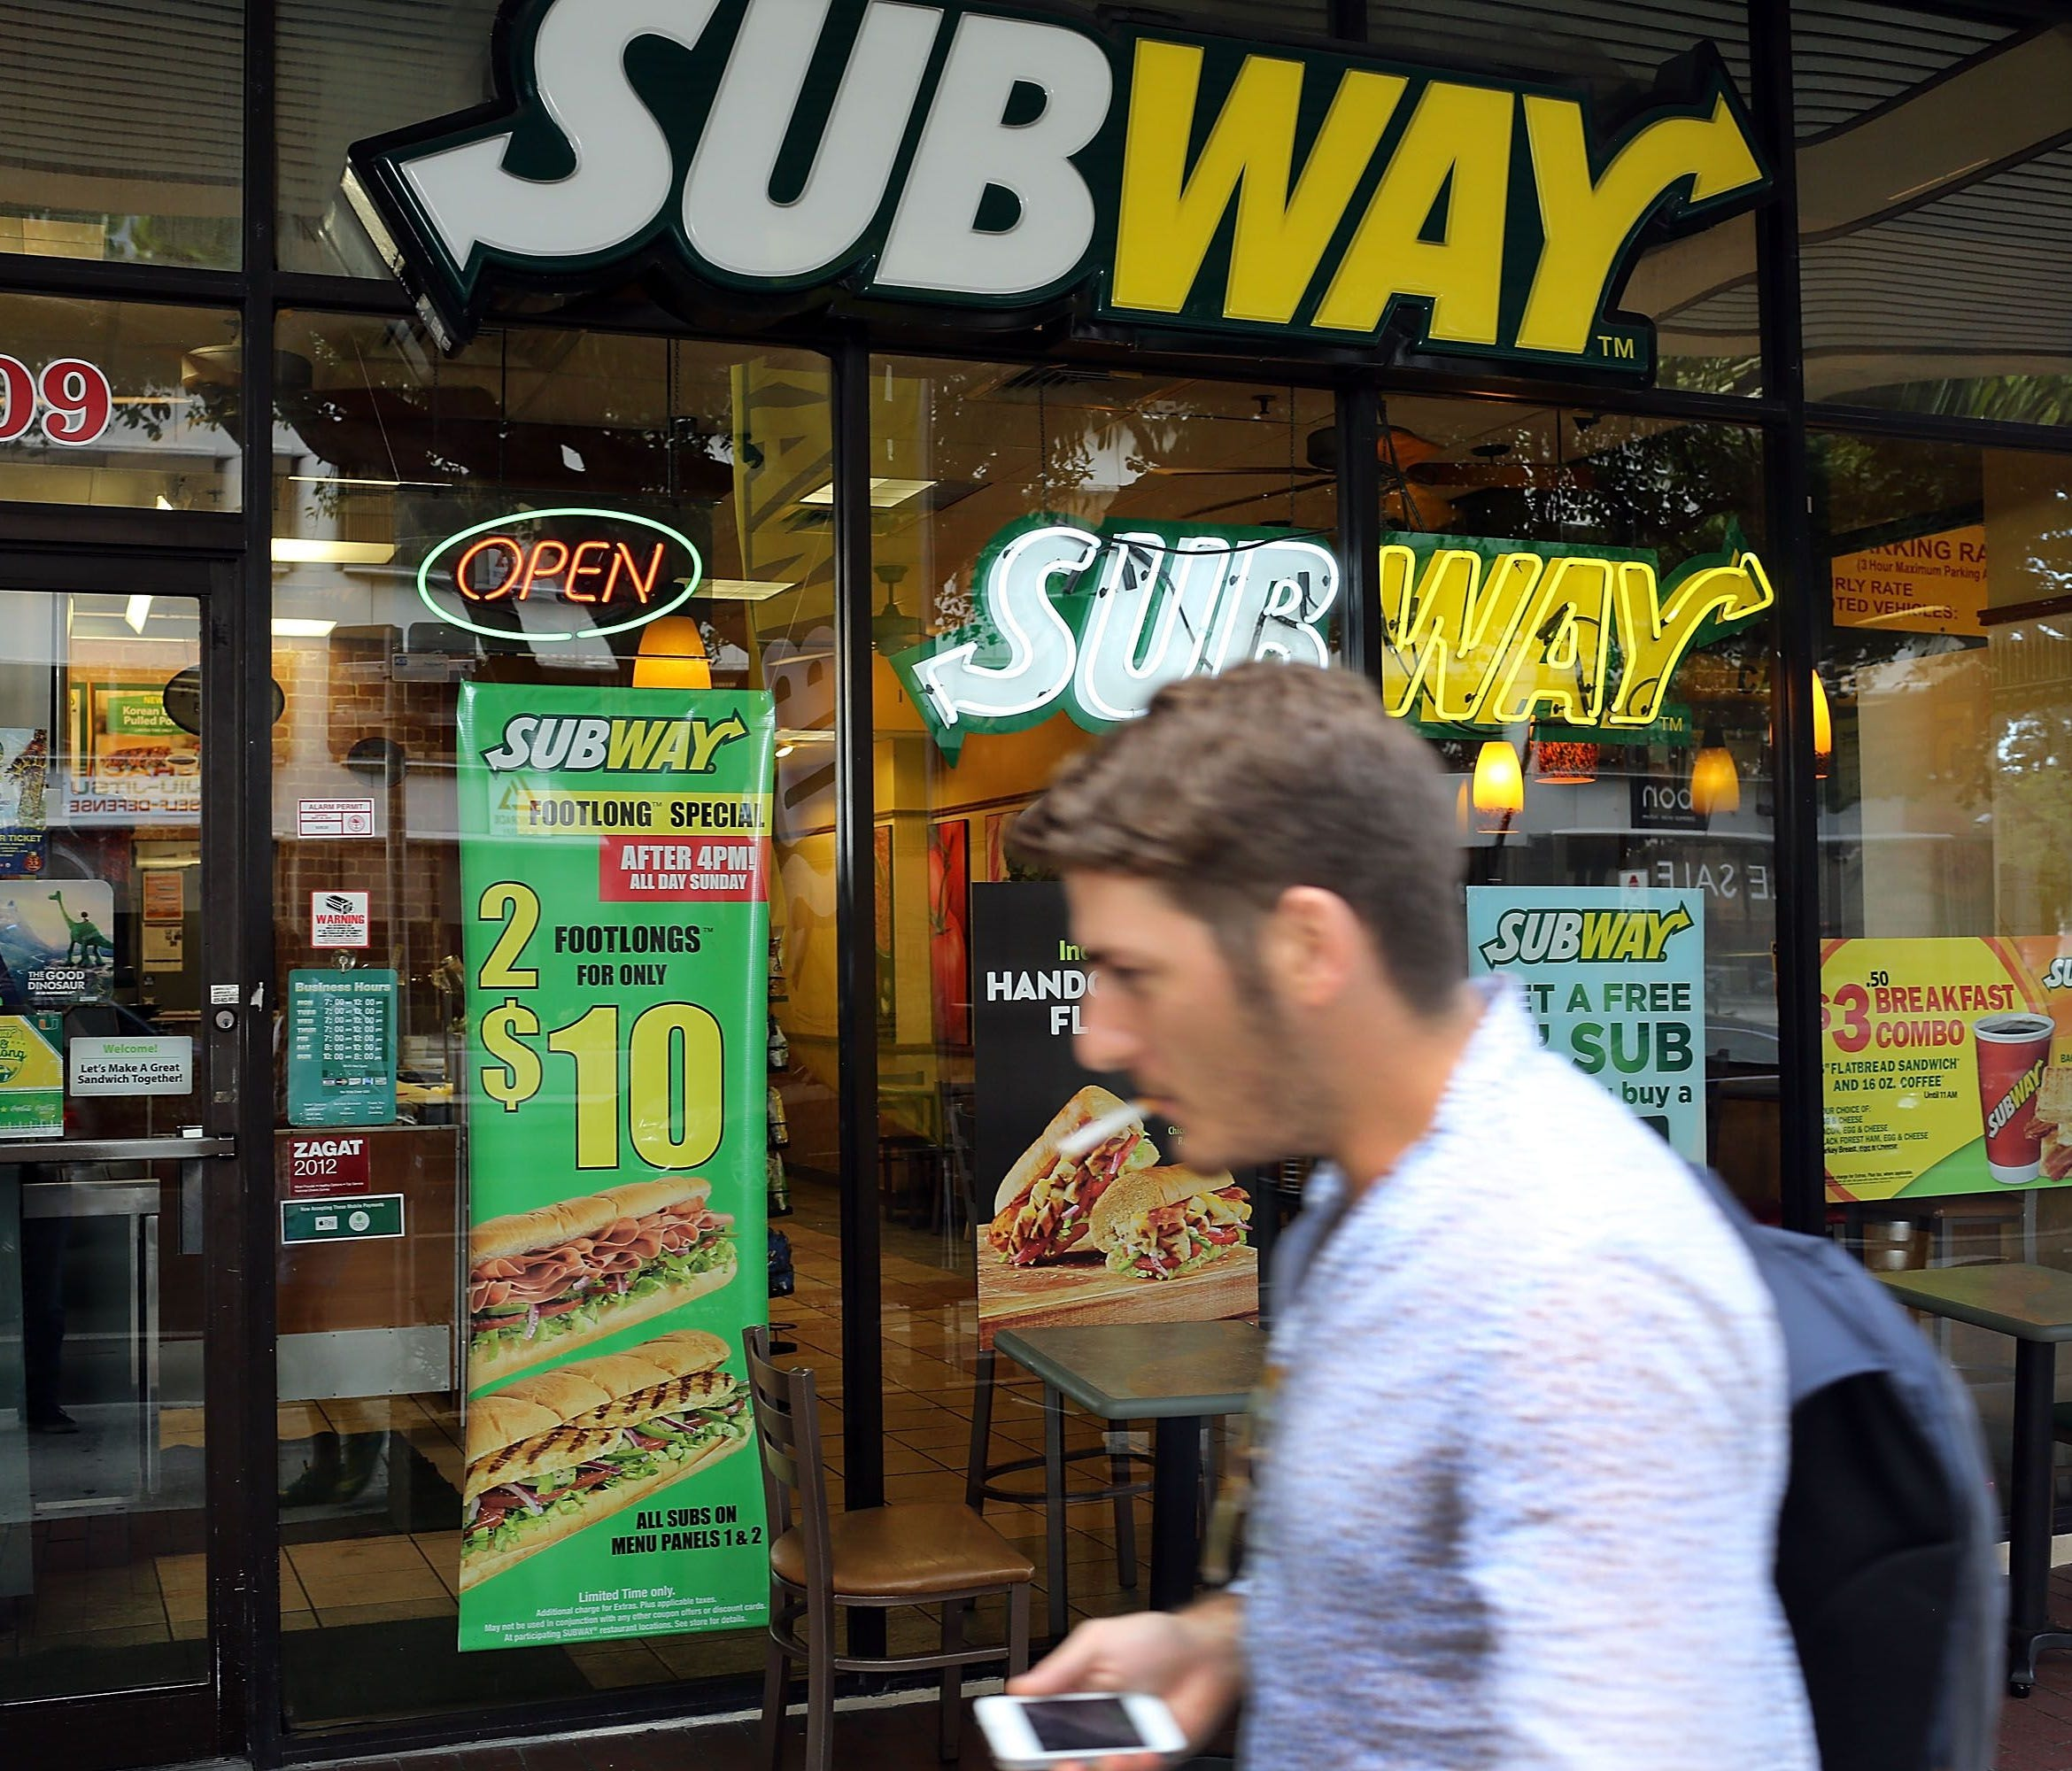 Subway Restaurants is planning to shutter an estimated 500 locations in the U.S. The Milford, Conn.-based chain wants to focus on better restaurant locations and boosting sales, according to Bloomberg. High on its priorities list is overseas expansio